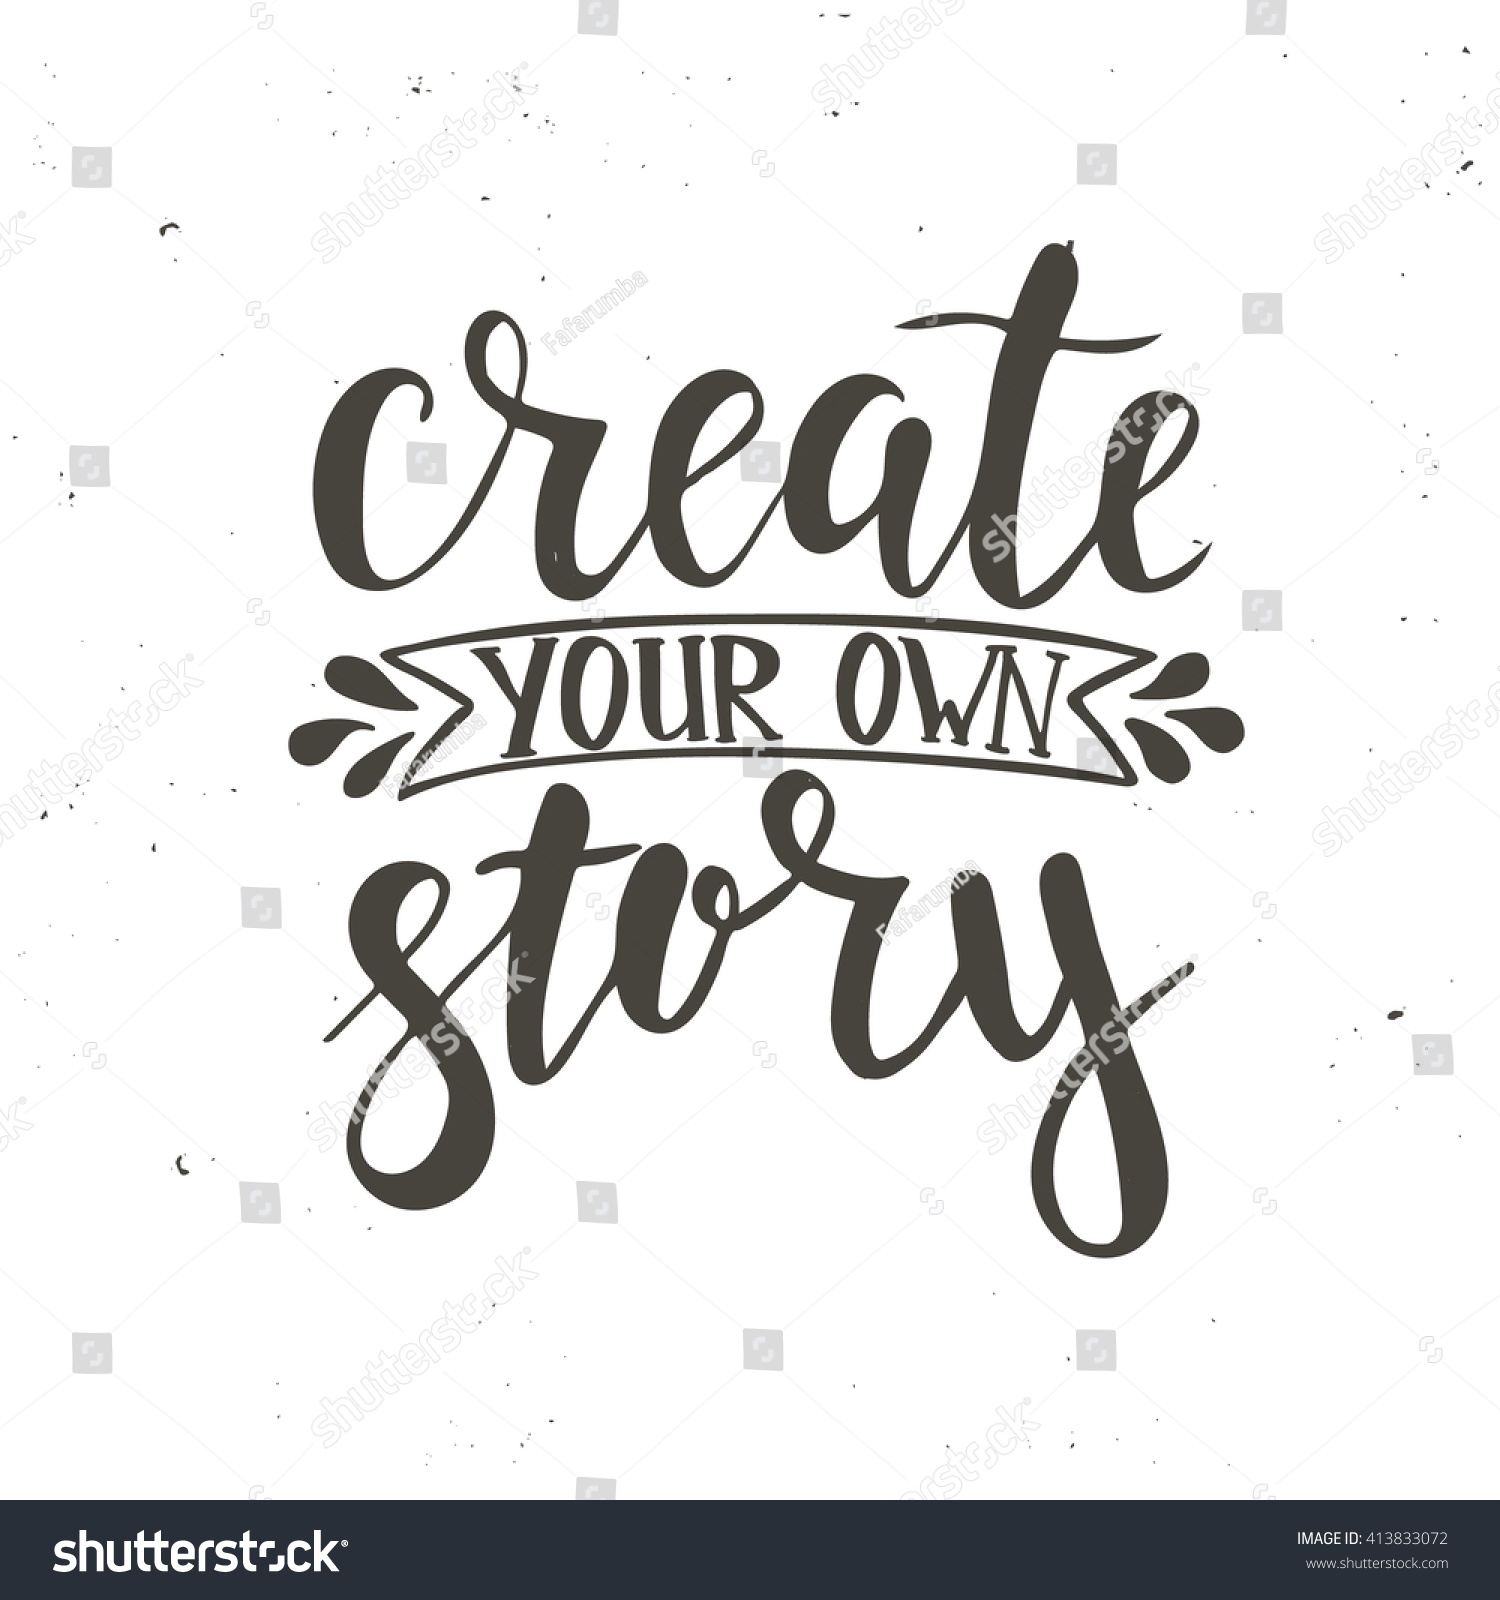 Create your own story hand drawn typography poster t for Create your own